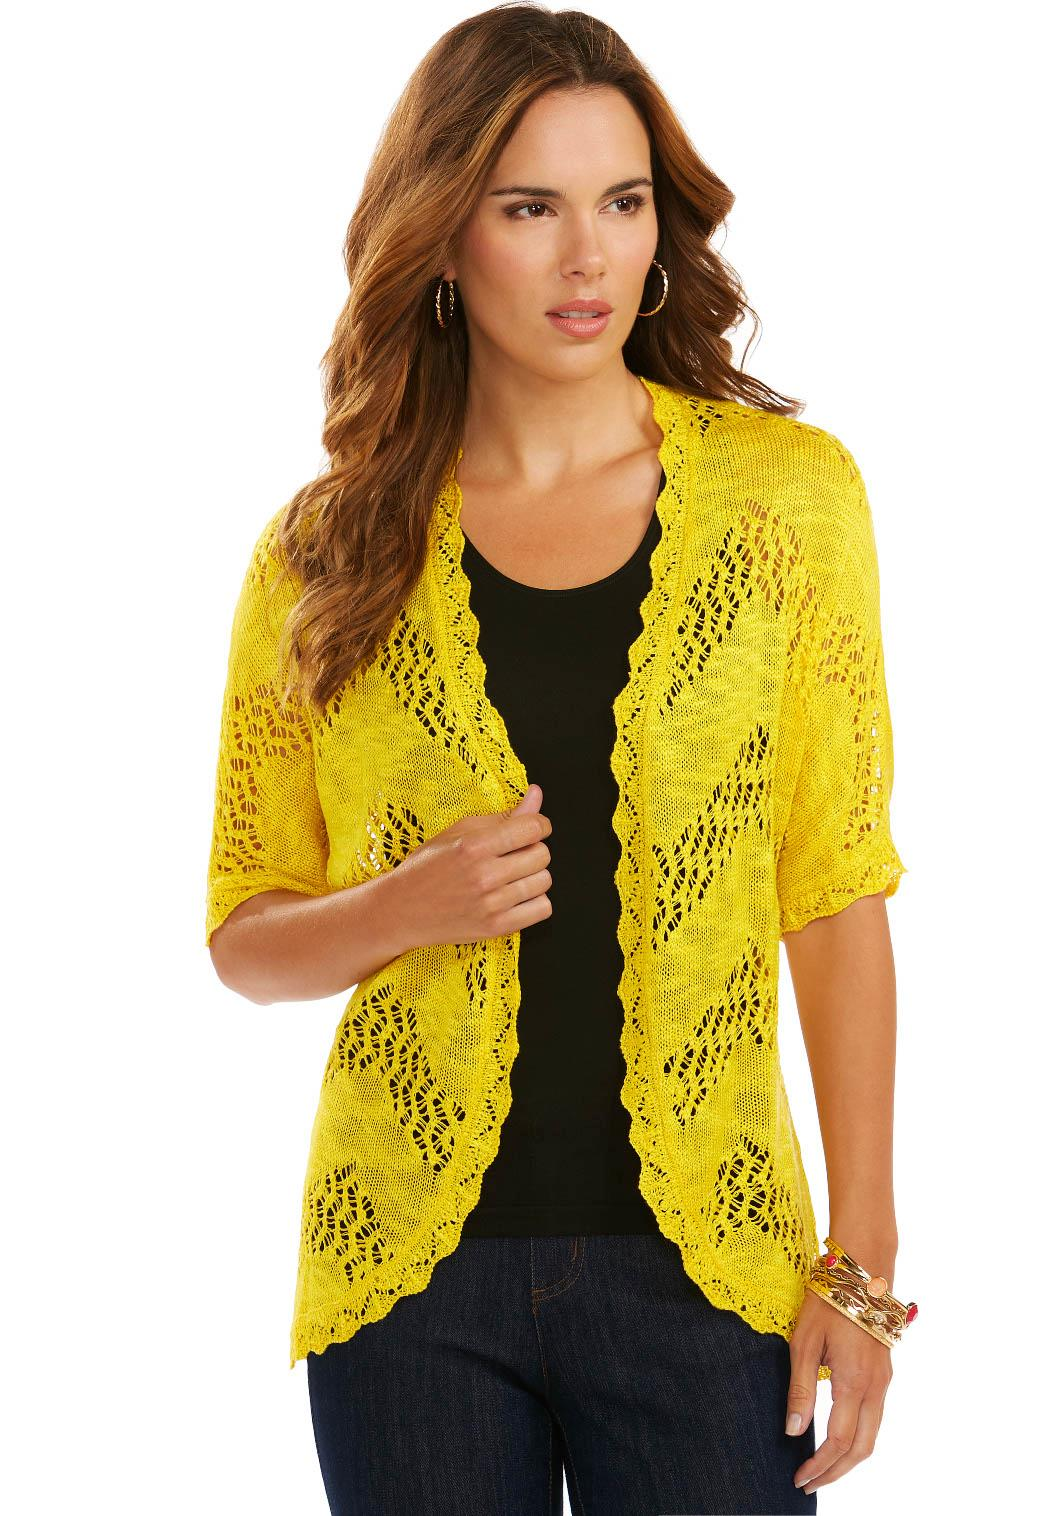 Cato Fashions Shrugs Chevron Crochet Cardigan Plus